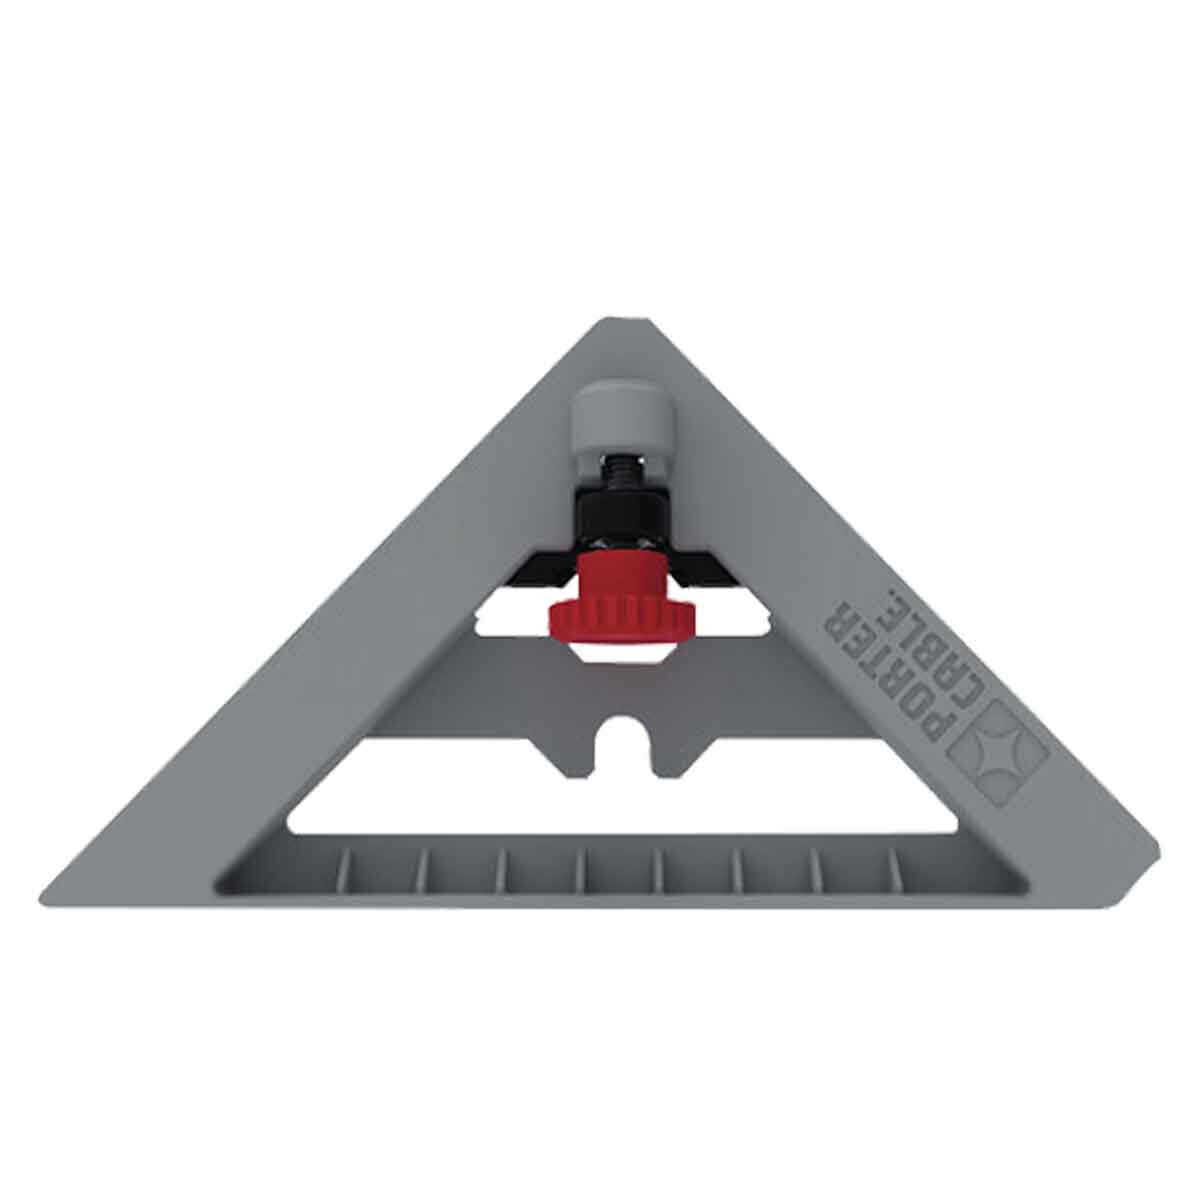 Porter Cable 7 inch Table Top Wet Tile Saw rip/angle guide